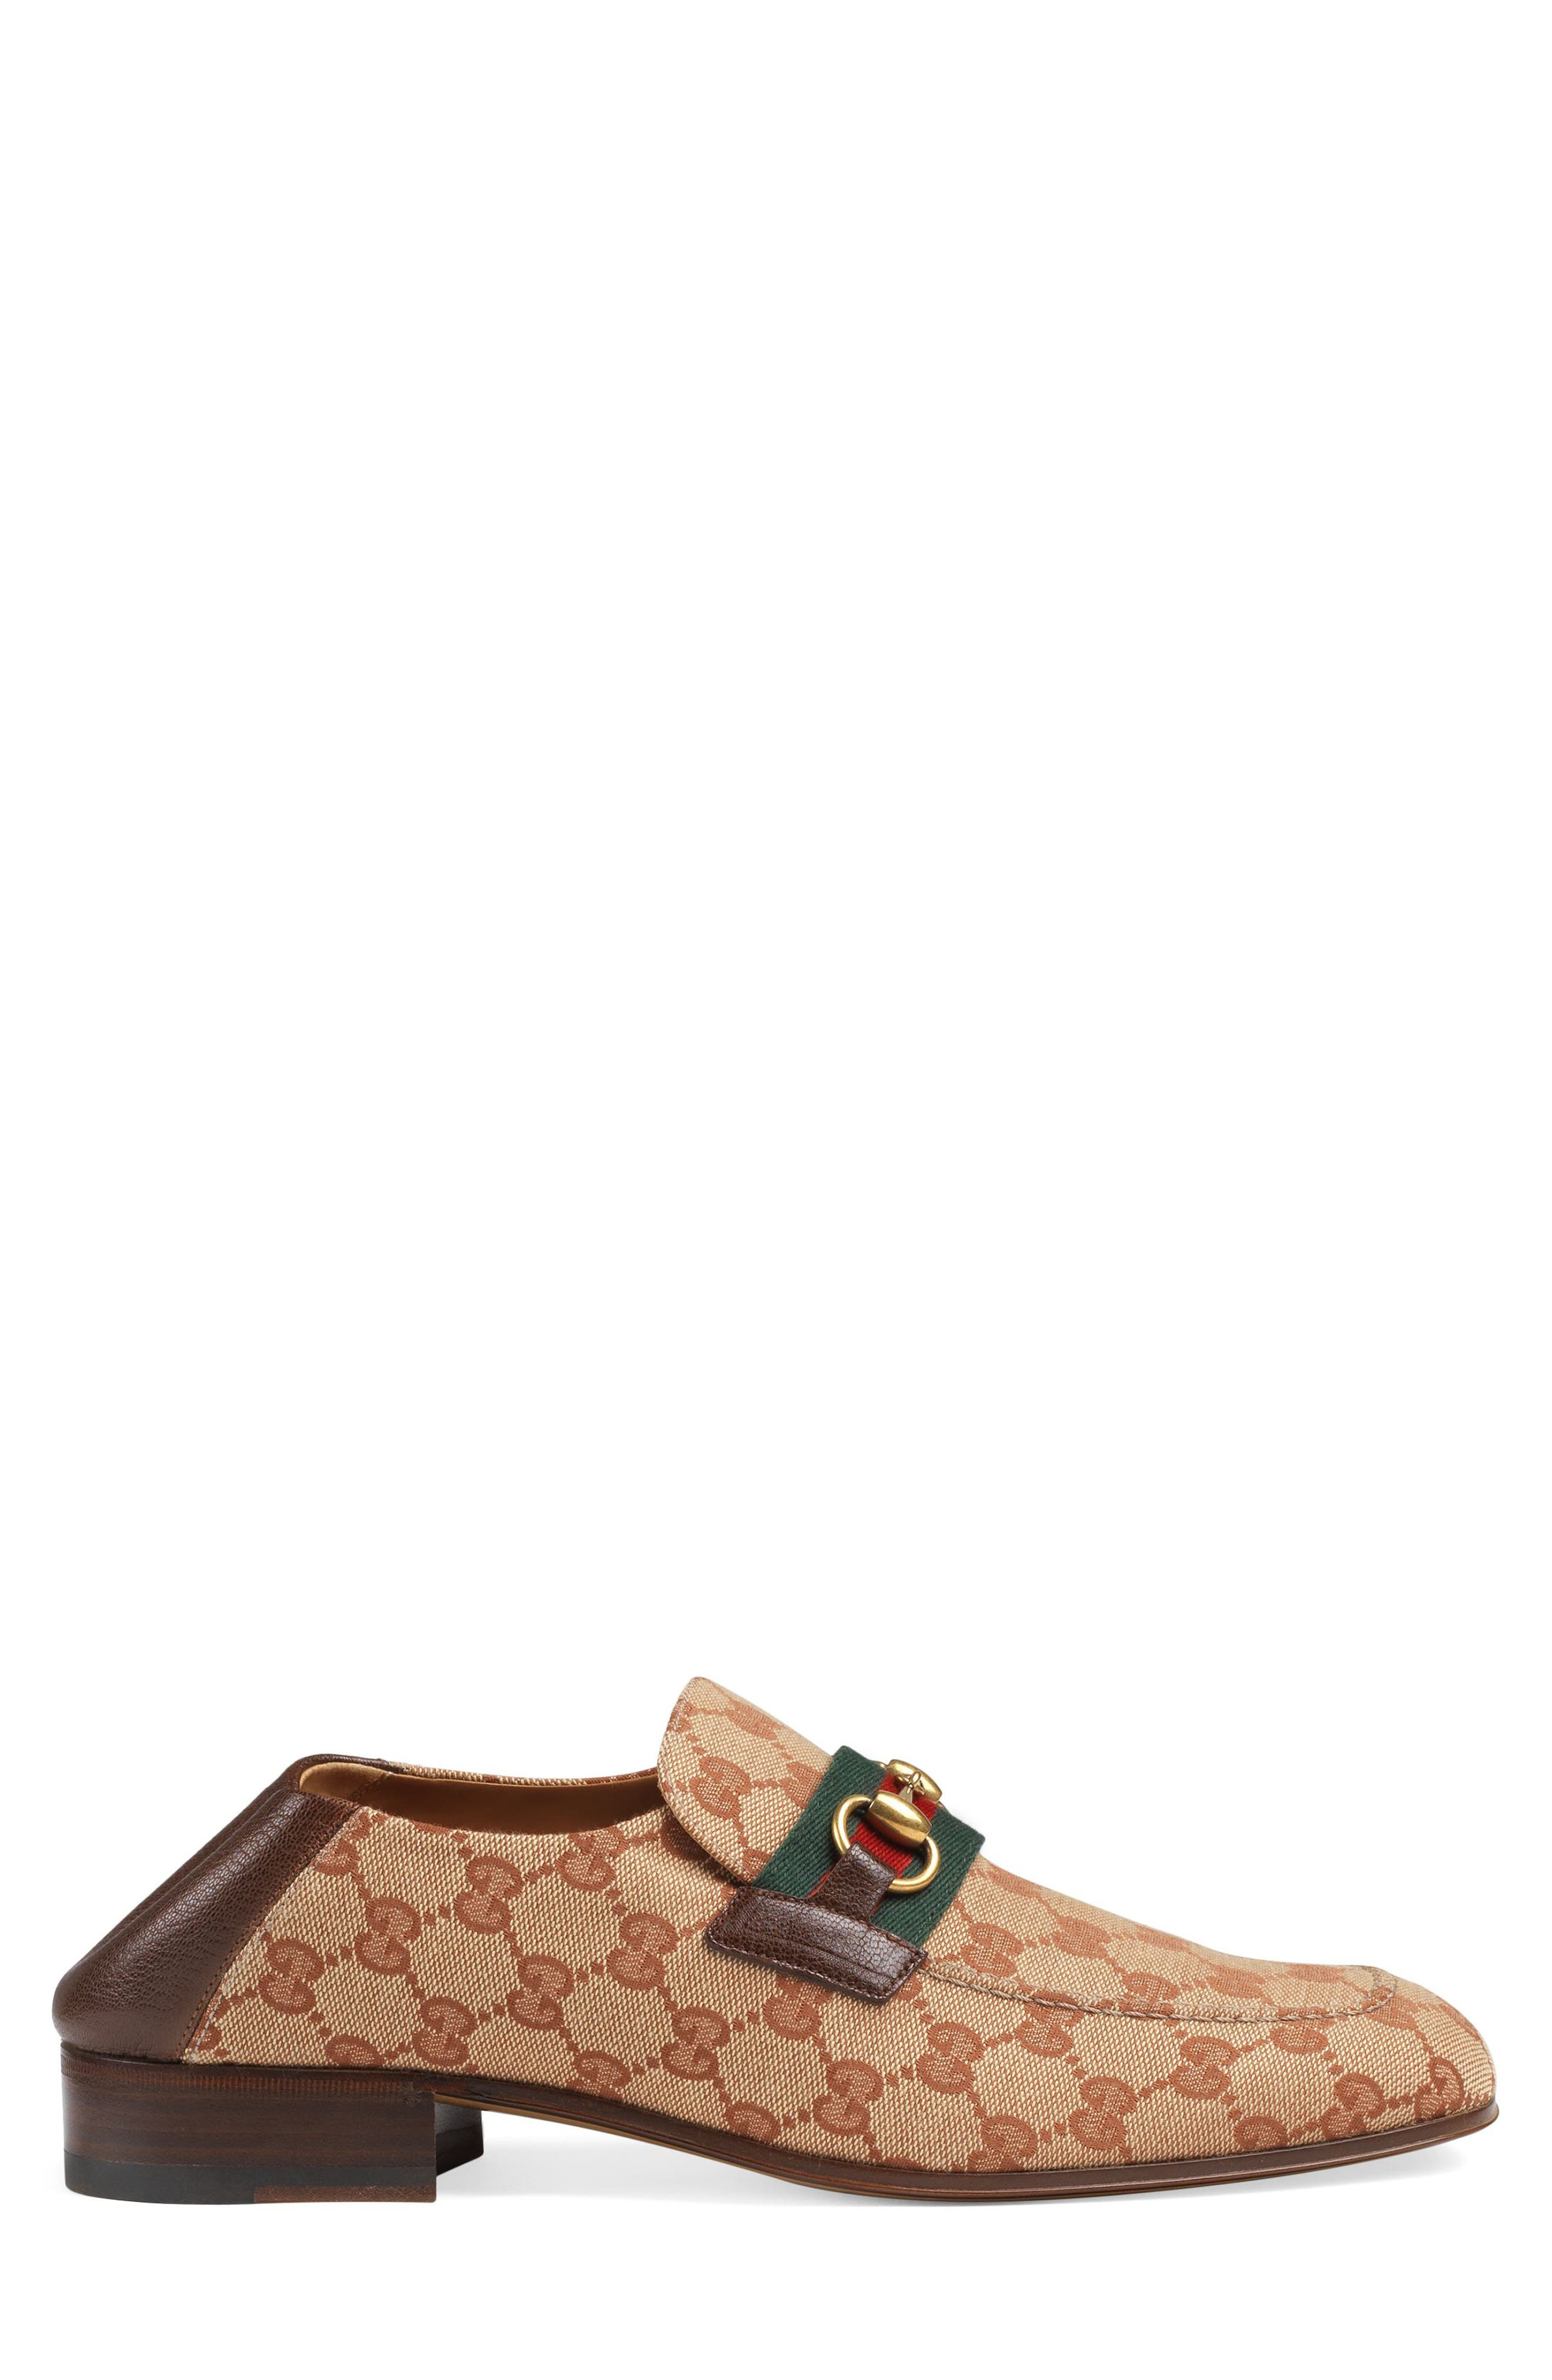 GUCCI,                             Horsebit Collapsible Leather Loafer,                             Alternate thumbnail 2, color,                             BEIGE/ ROSE